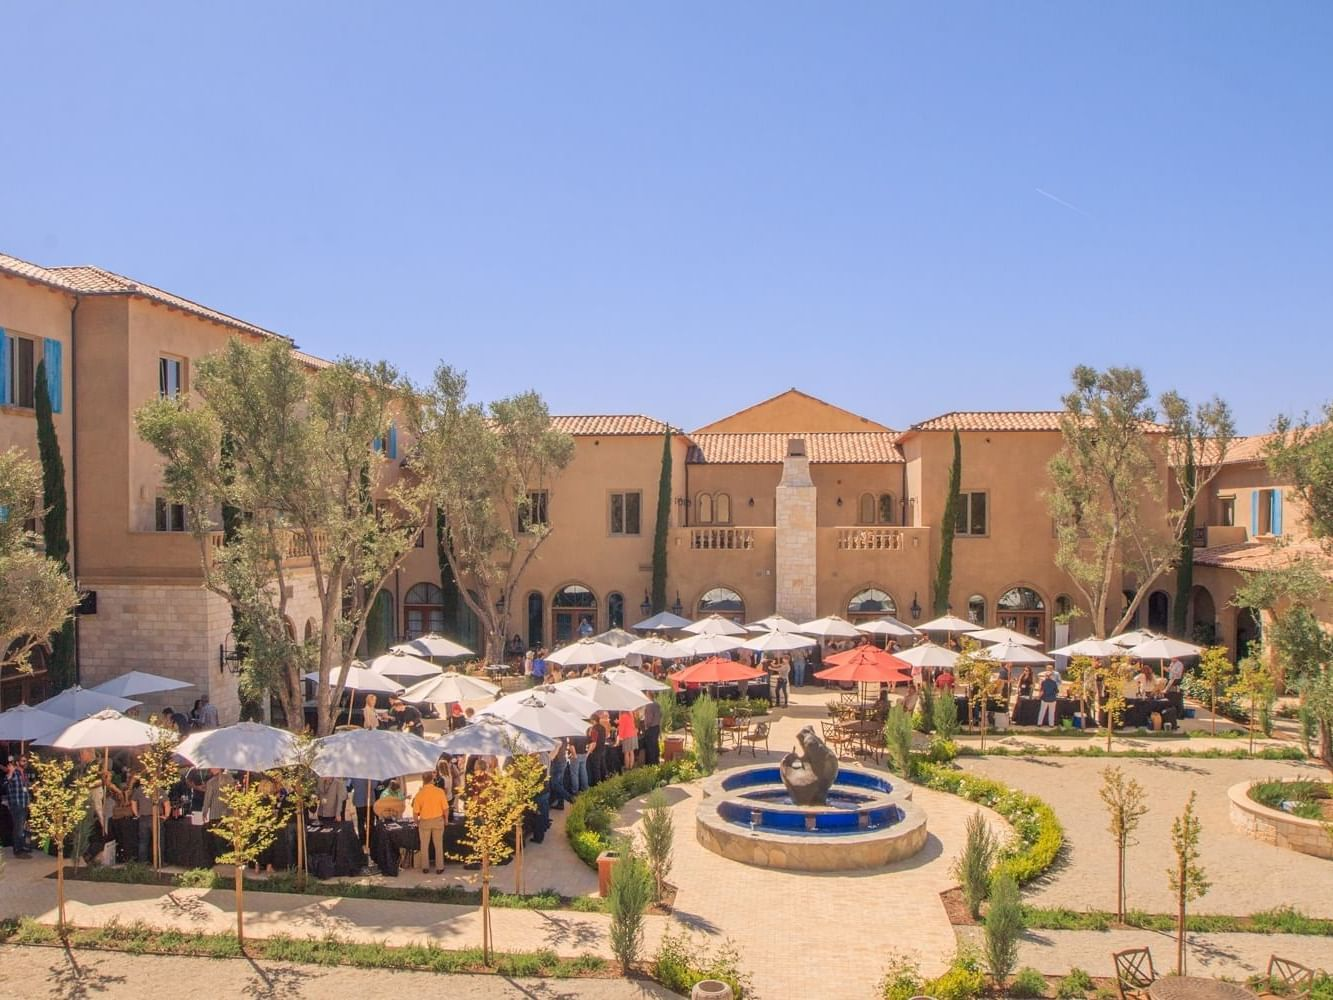 An areal view of the Allegretto's courtyard